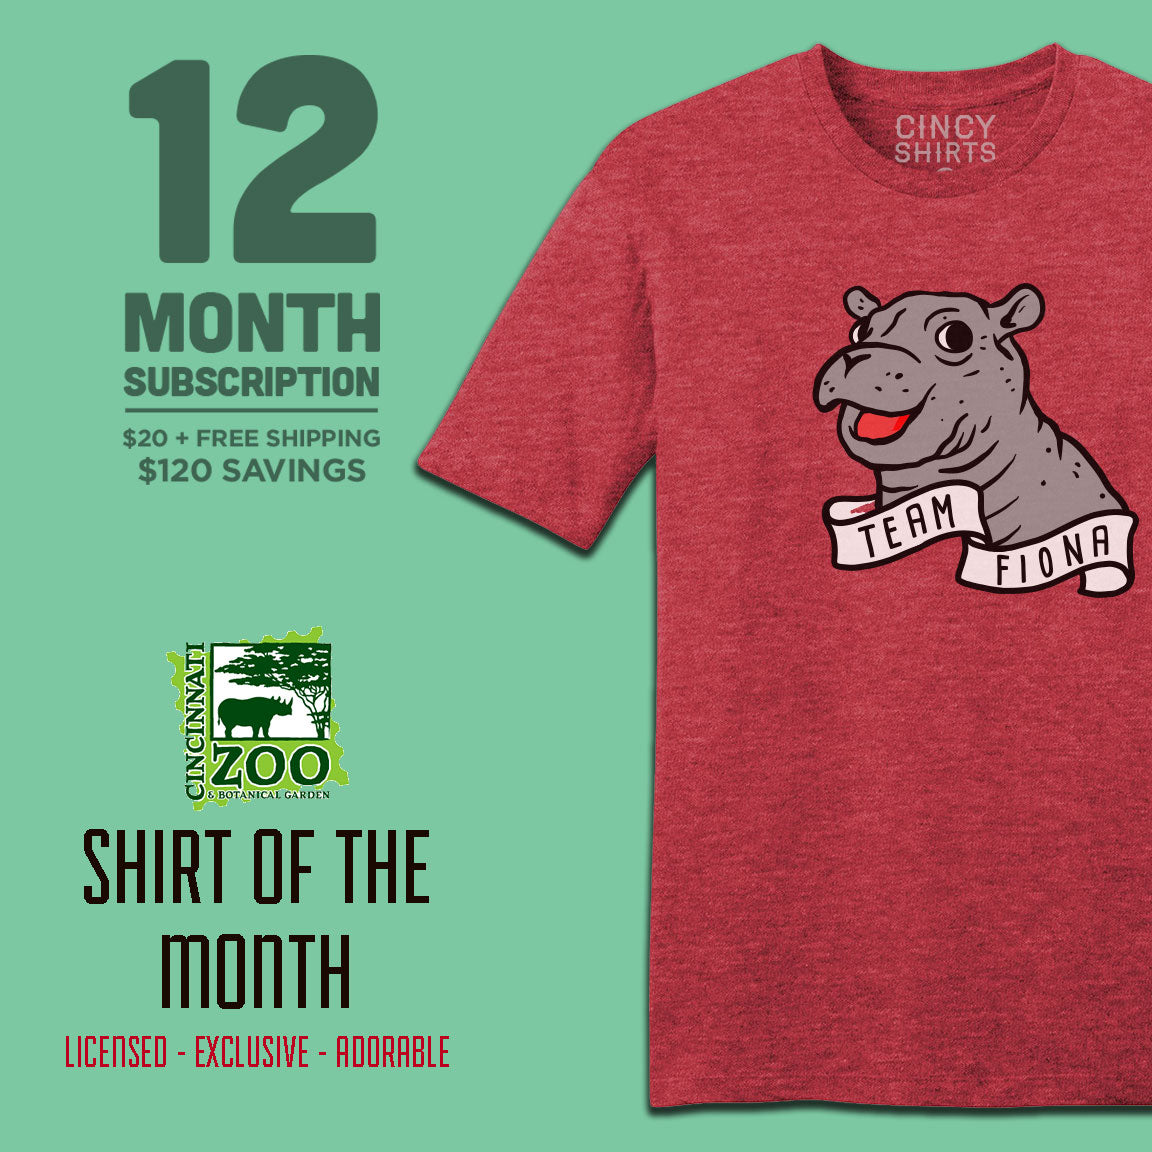 12-month Cincinnati Zoo Shirt of the Month - Cincy Shirts